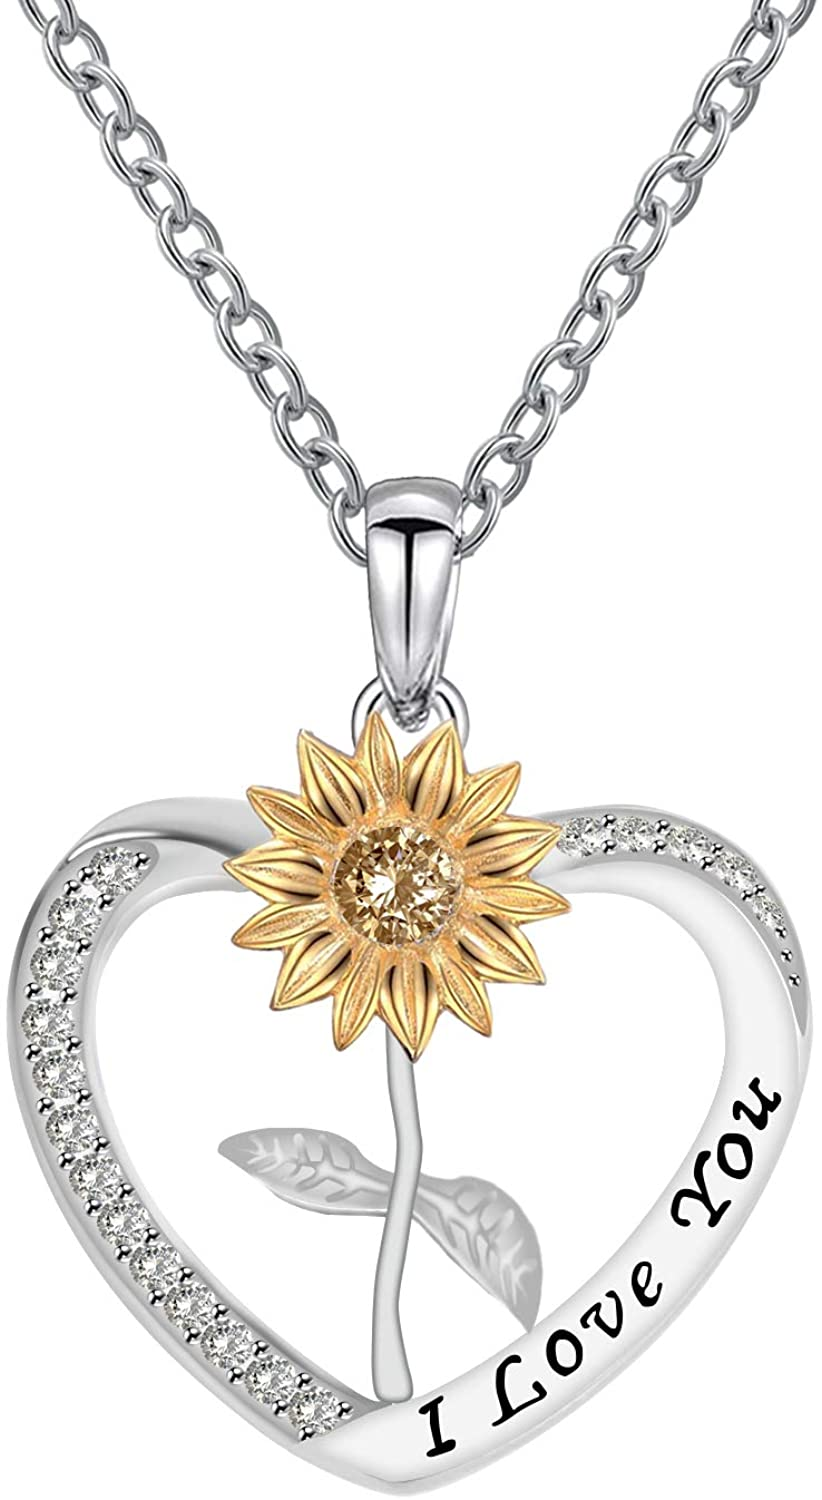 LYMYF You are My Sunshine Engraved Necklace Heart Sunflower Necklace Jewelry for Mom Women Girls Customized Engraved Personalized